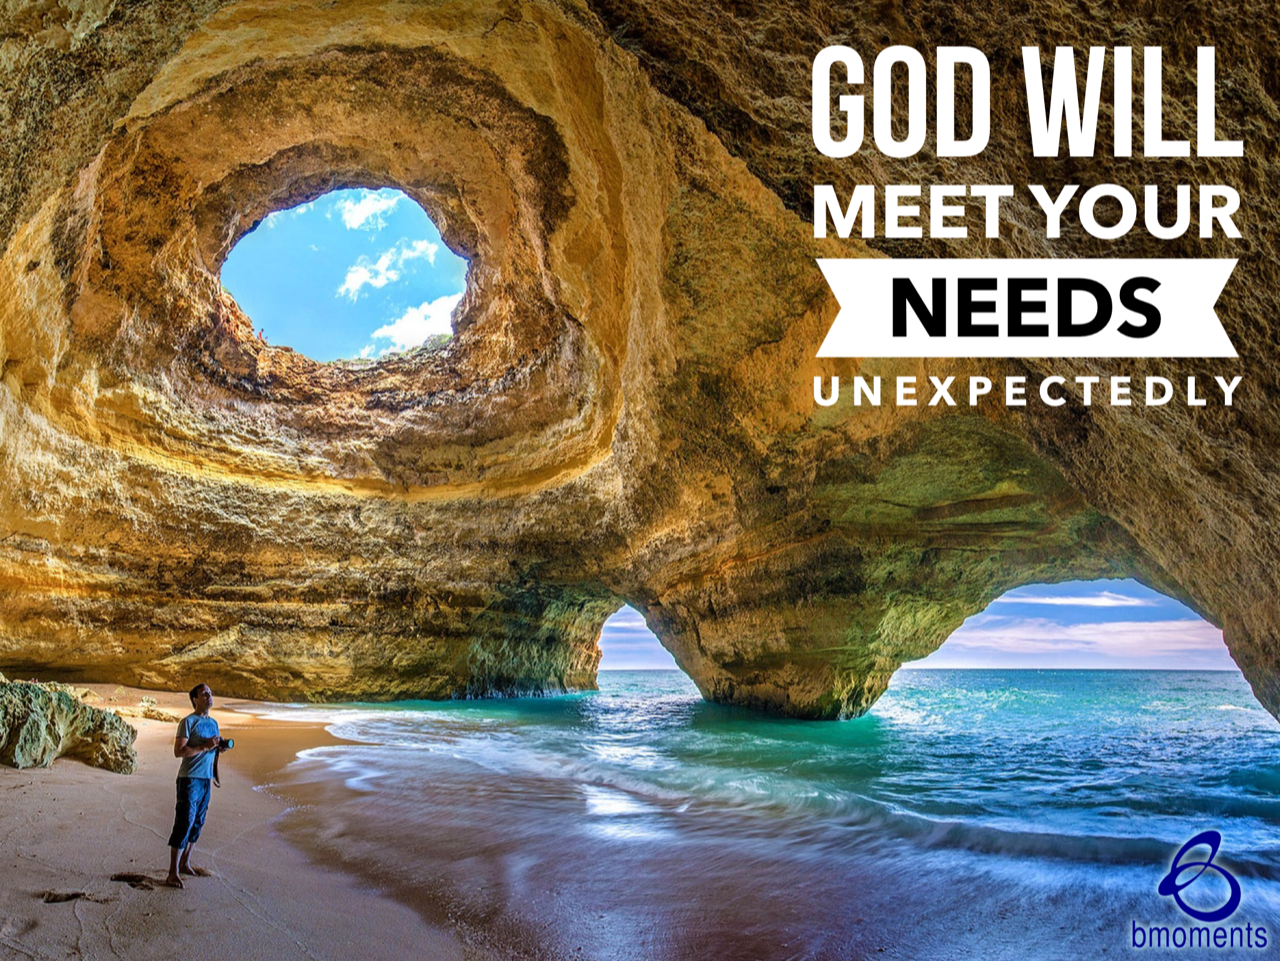 God Will Meet Your Needs in an Unexpected Way